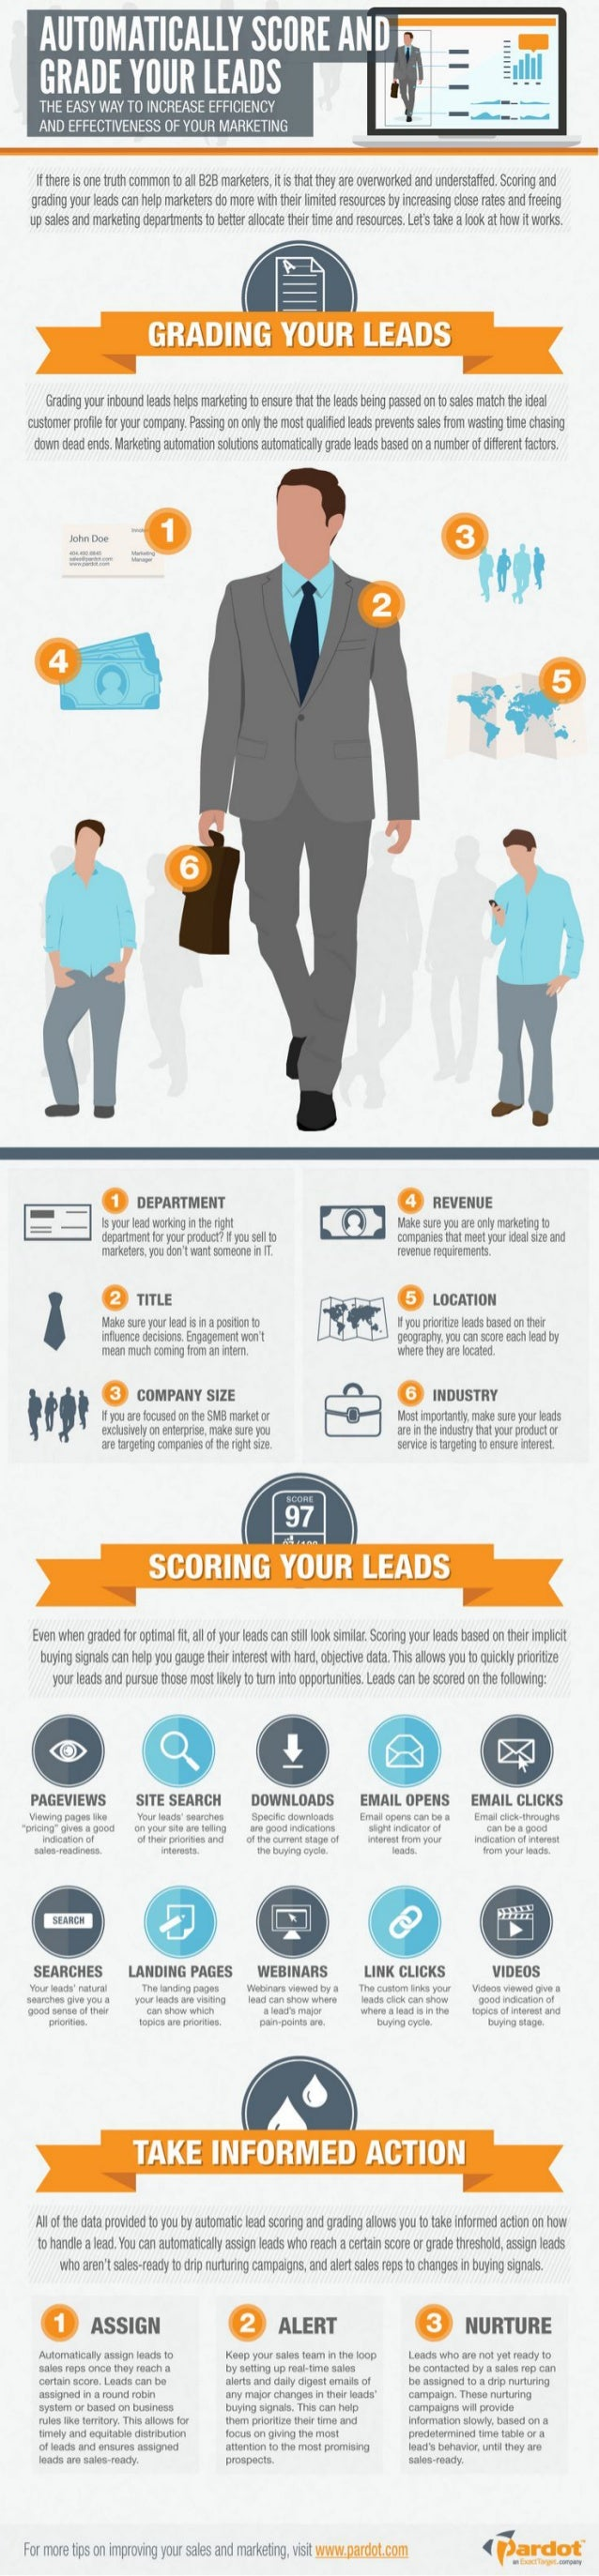 Automatically Score and Grade Your Leads [Infographic]